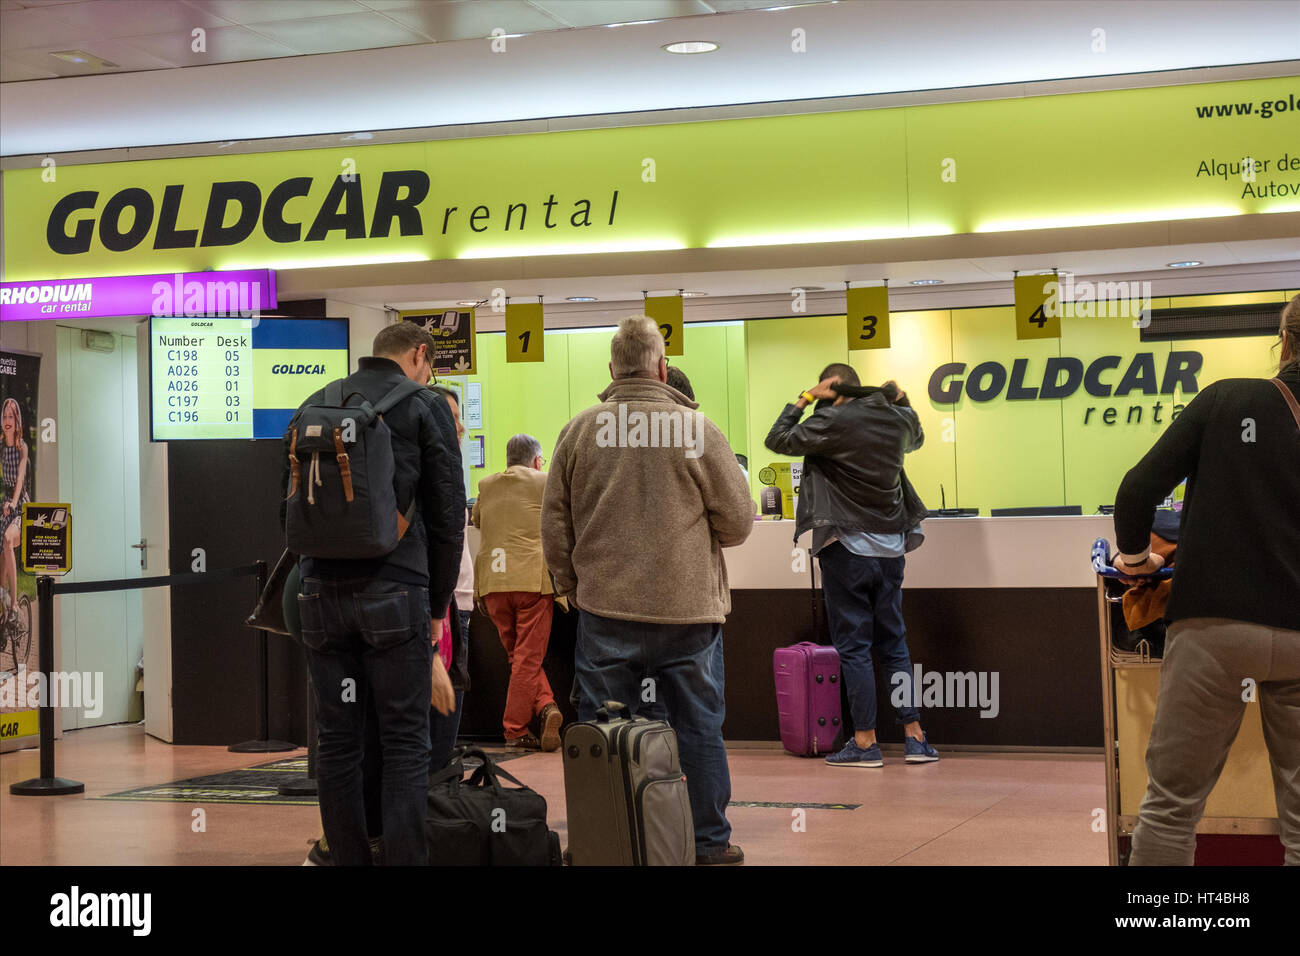 Goldcar gold car hire rental car rentals desk at malaga airport with customers in line